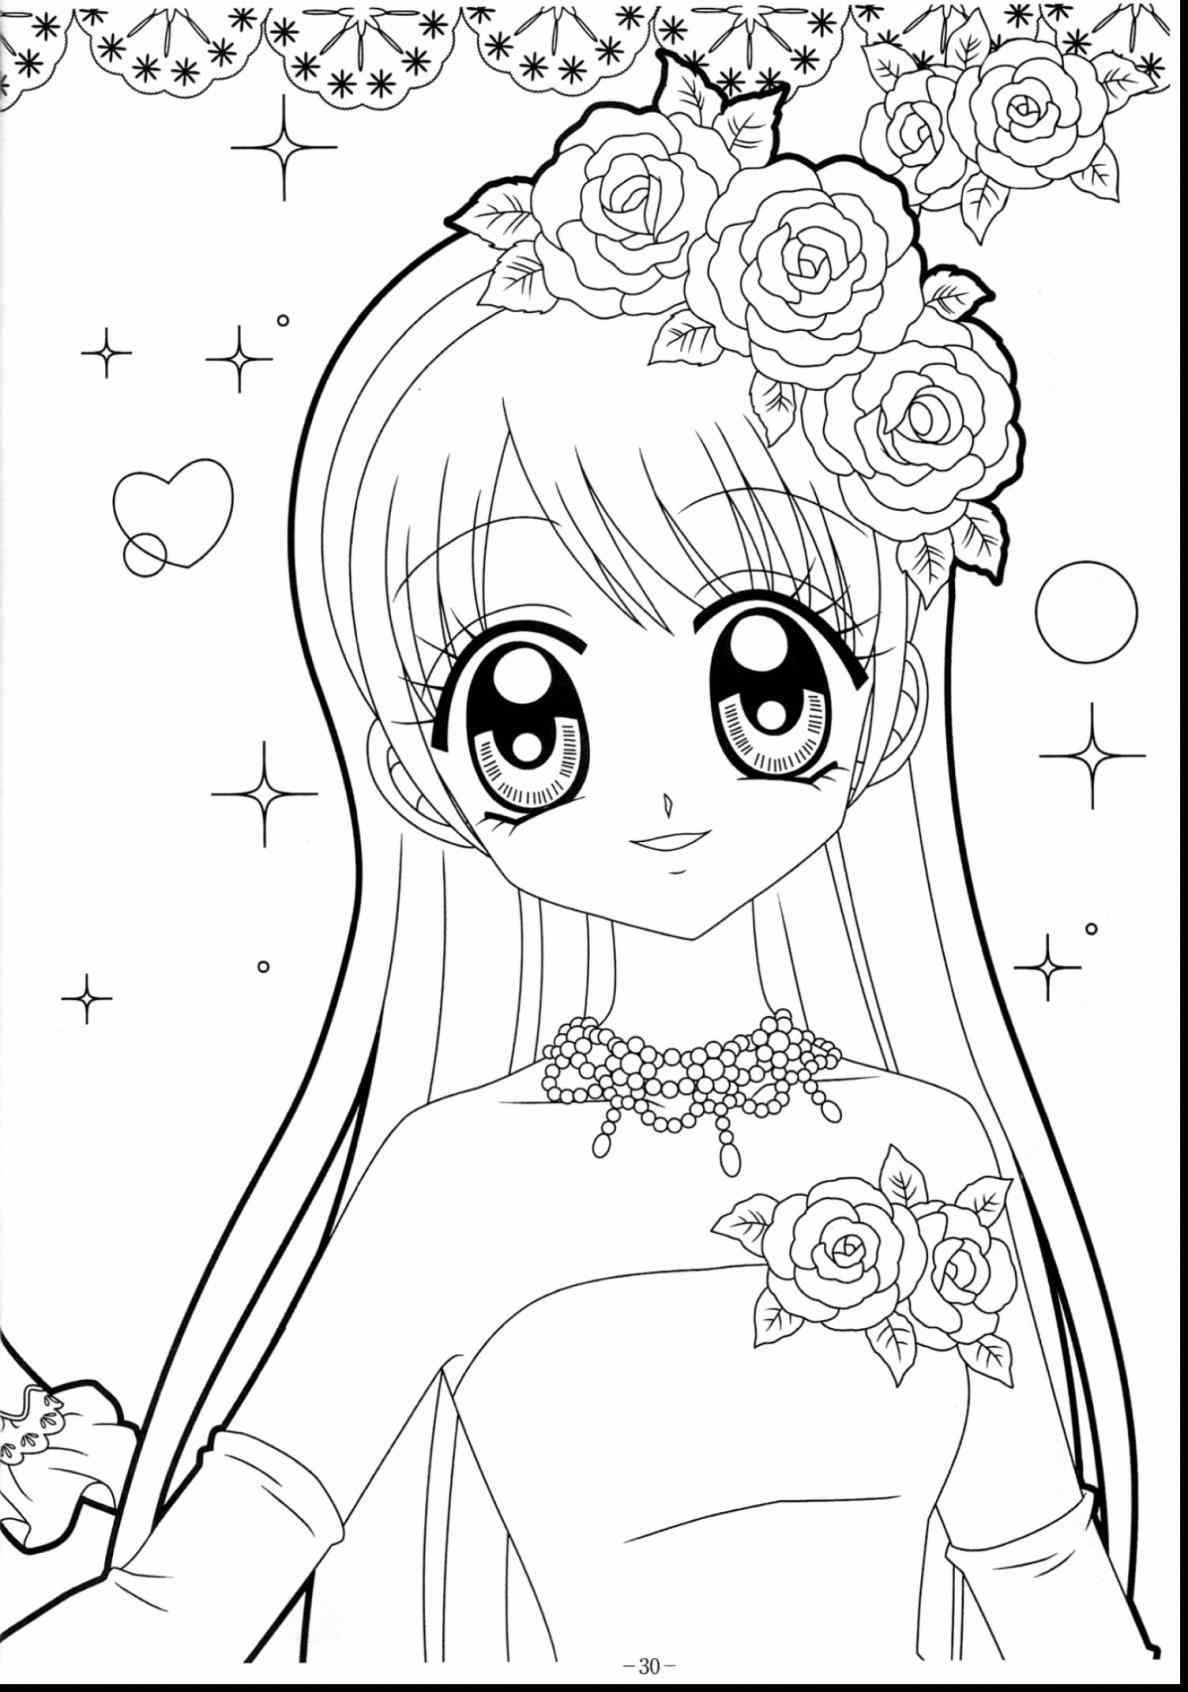 unicorn anime coloring pages cute anime unicorn coloring pages coloring pages for kids coloring anime unicorn pages